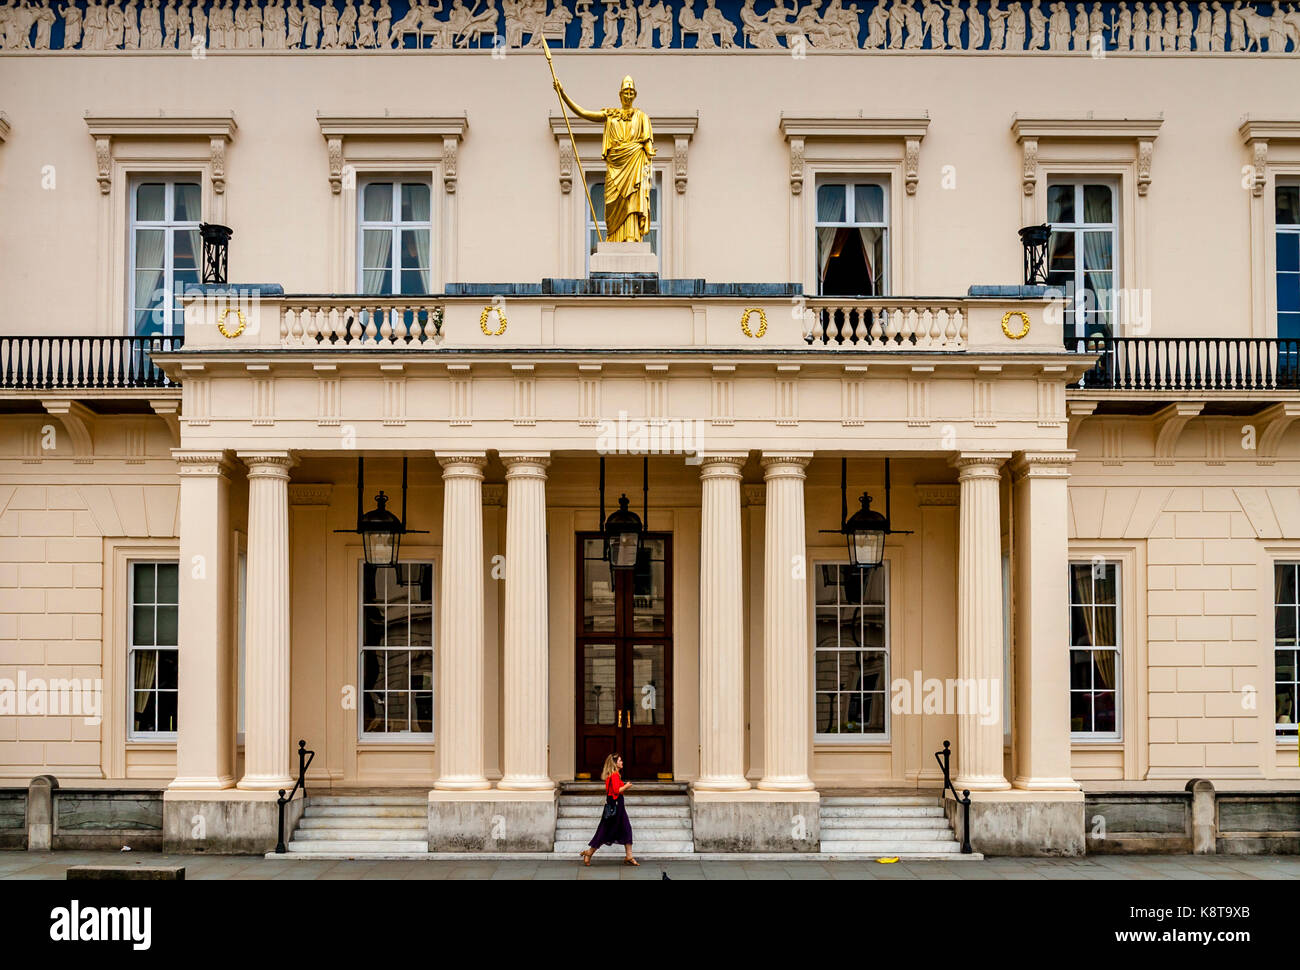 The Athenaeum Club, Pall Mall, London, UK - Stock Image